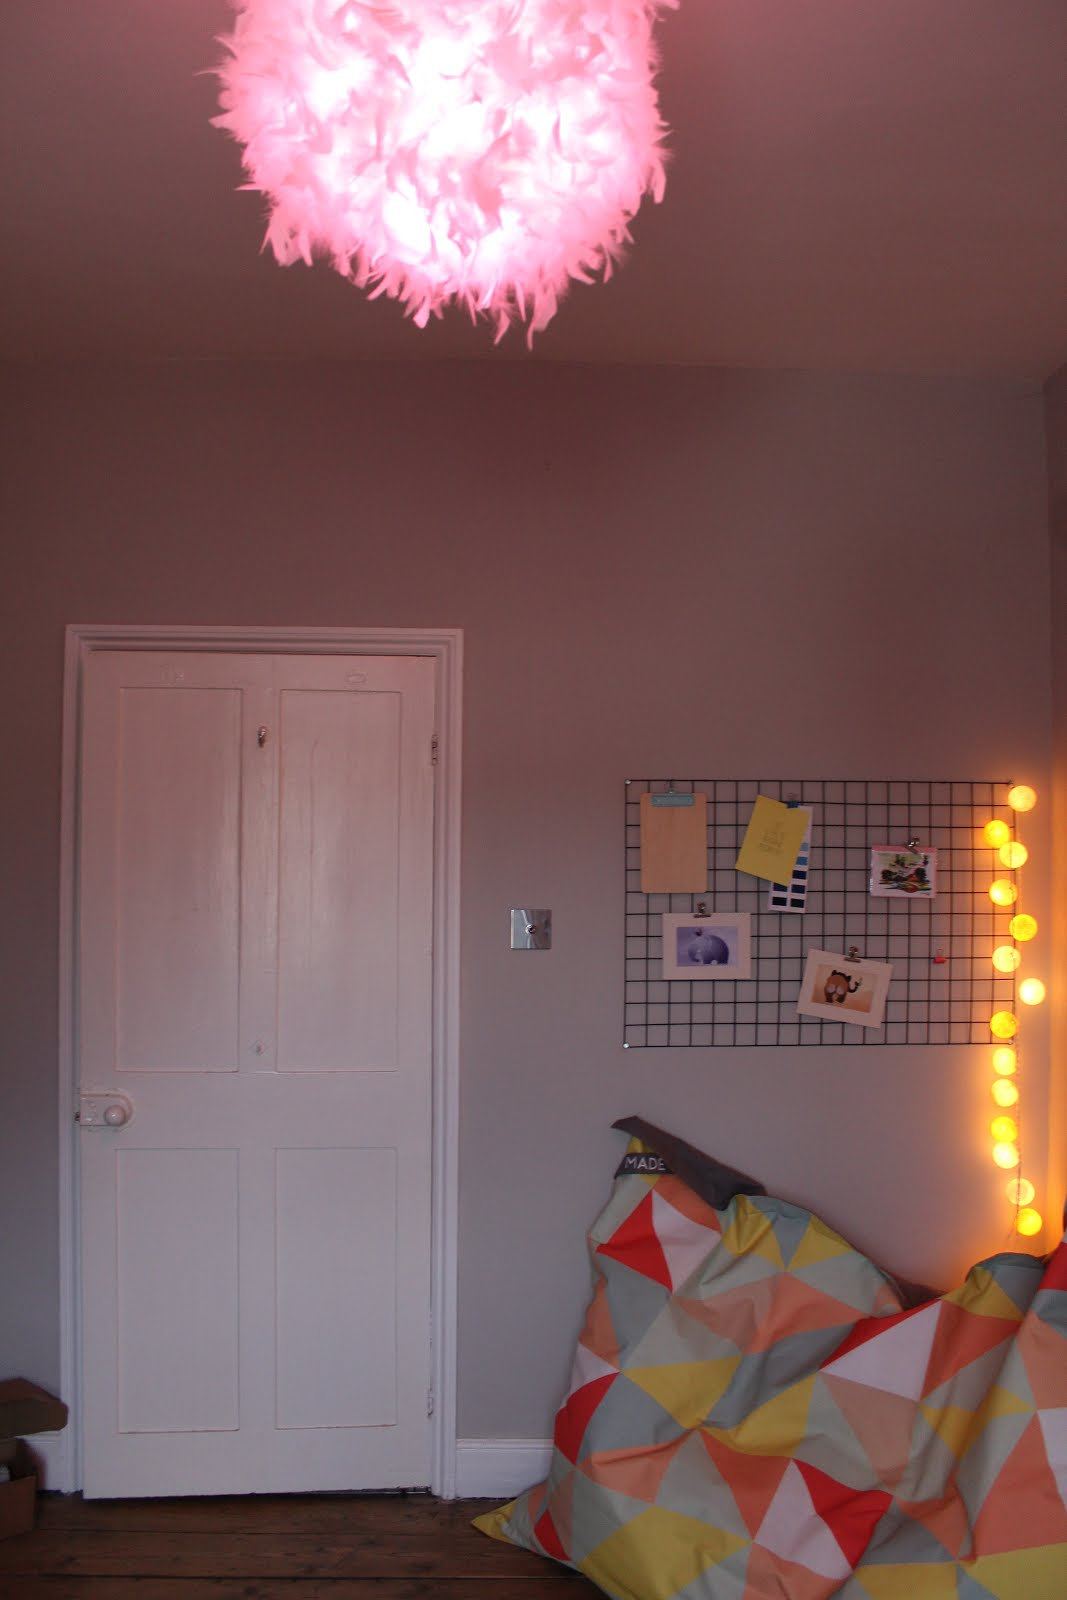 Pink Light Bulb in Bedroom